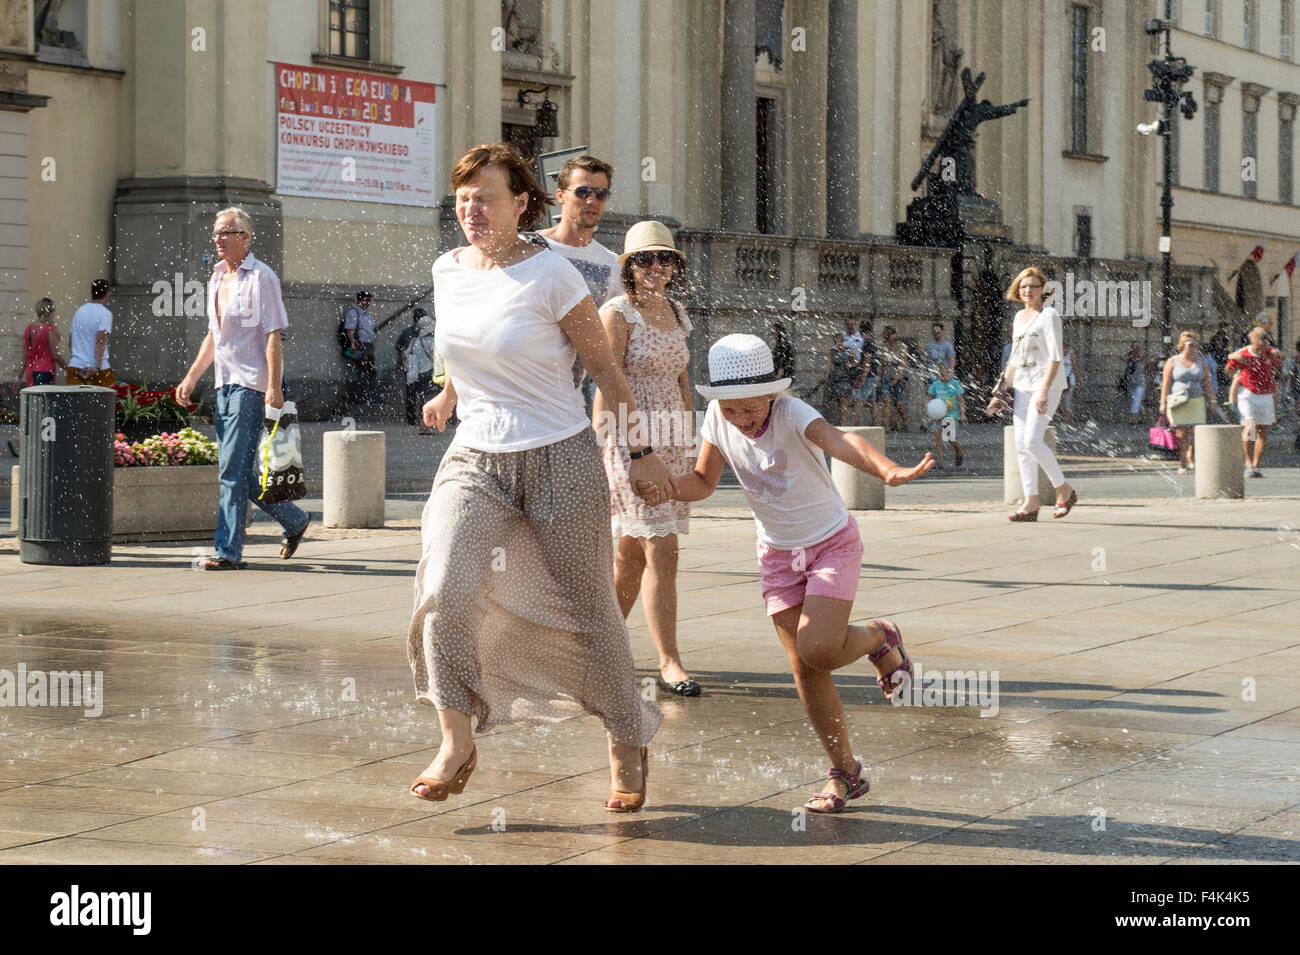 A mother and child run through a sprinkler on a hot day in Warsaw, Poland - Stock Image